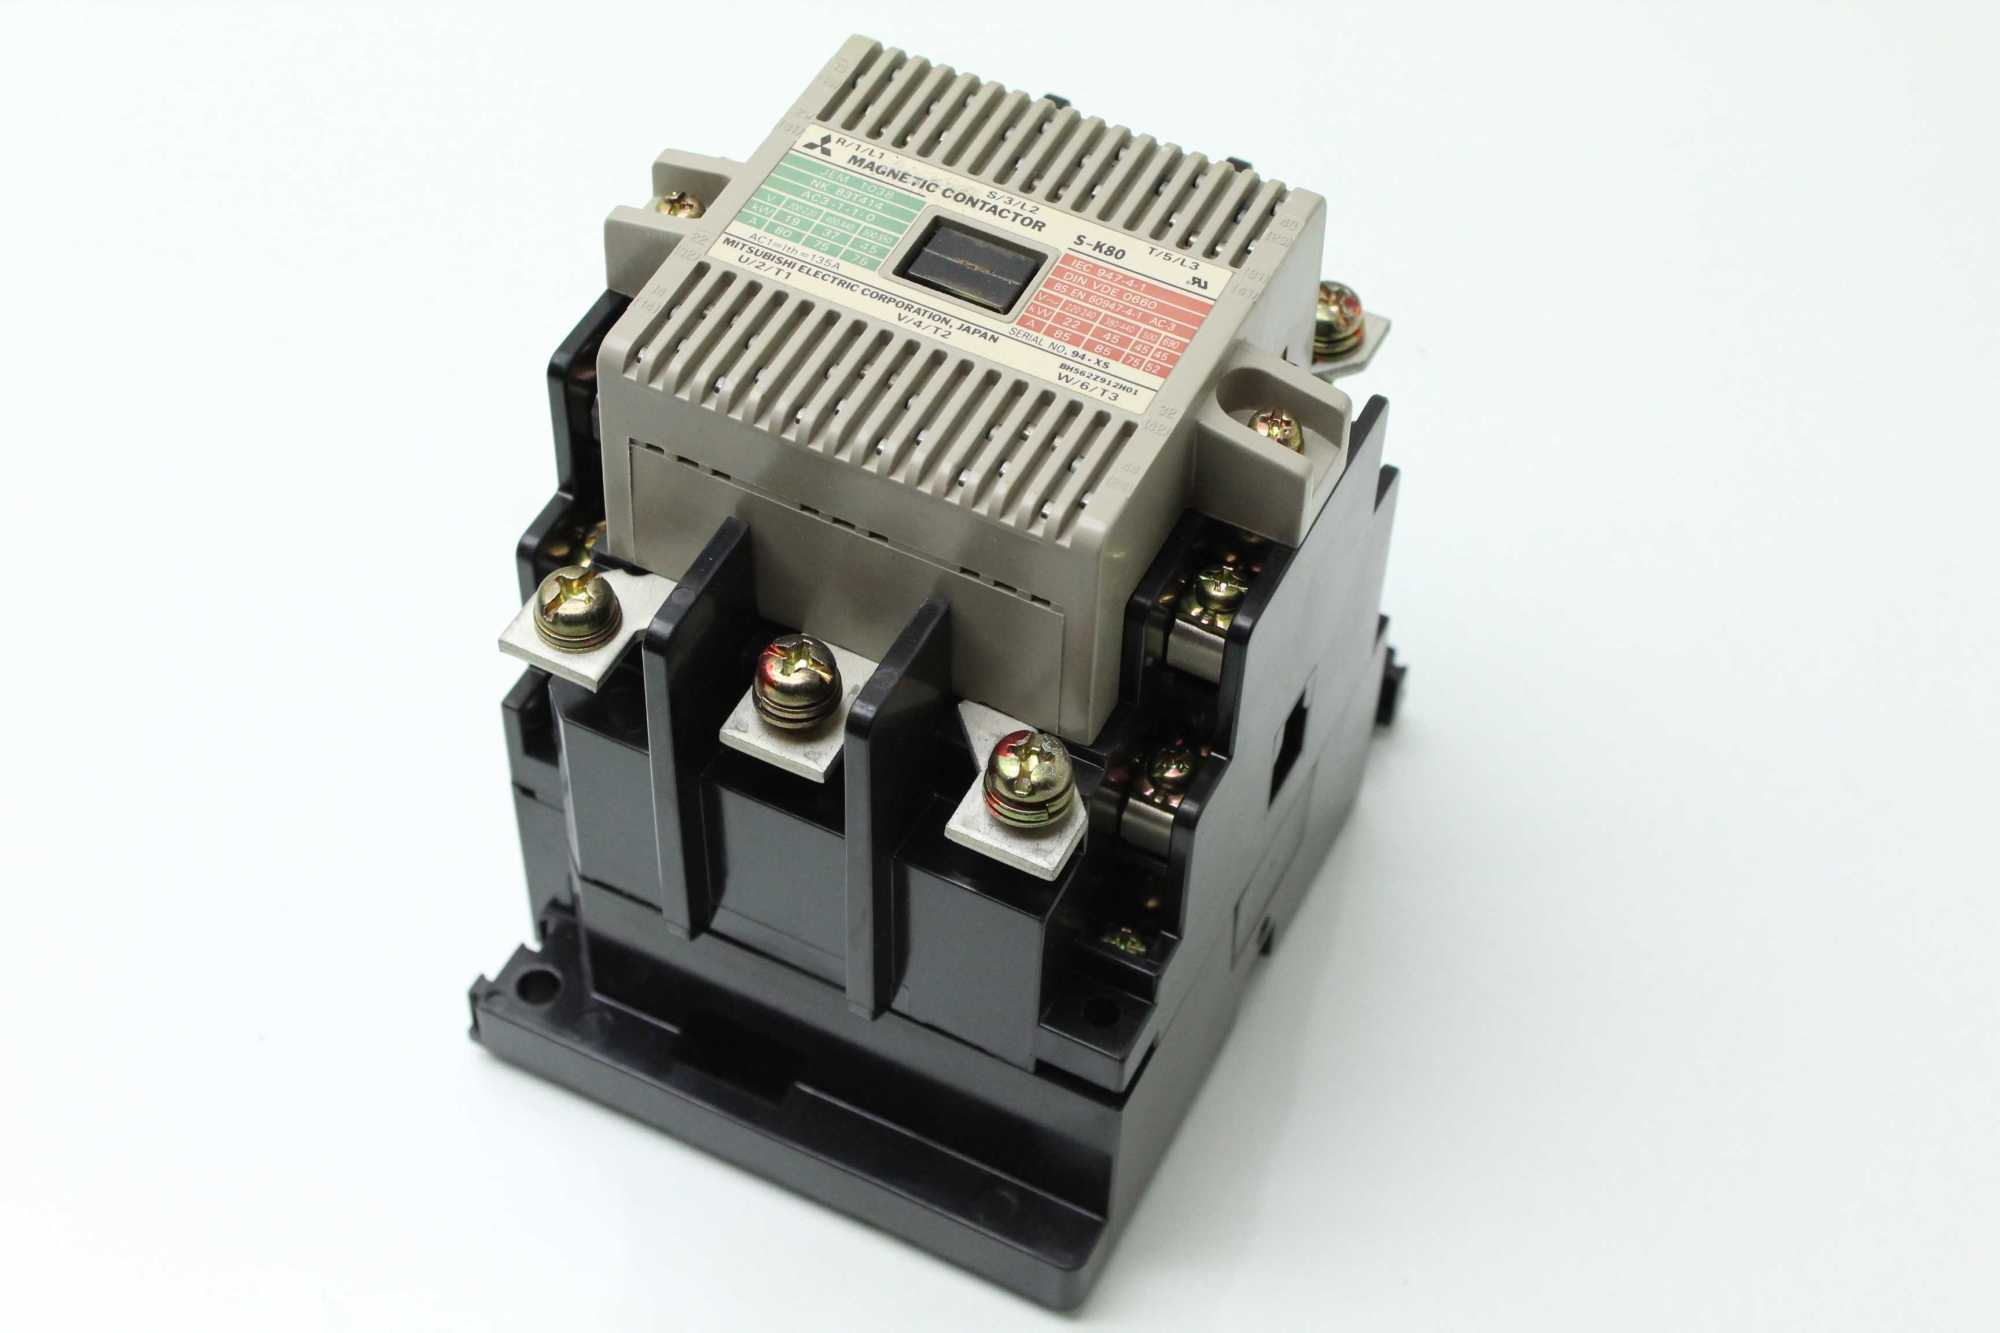 hight resolution of mitsubishi s k80 magnetic contactor 45 kw 200 240 vac used 183455265793 19